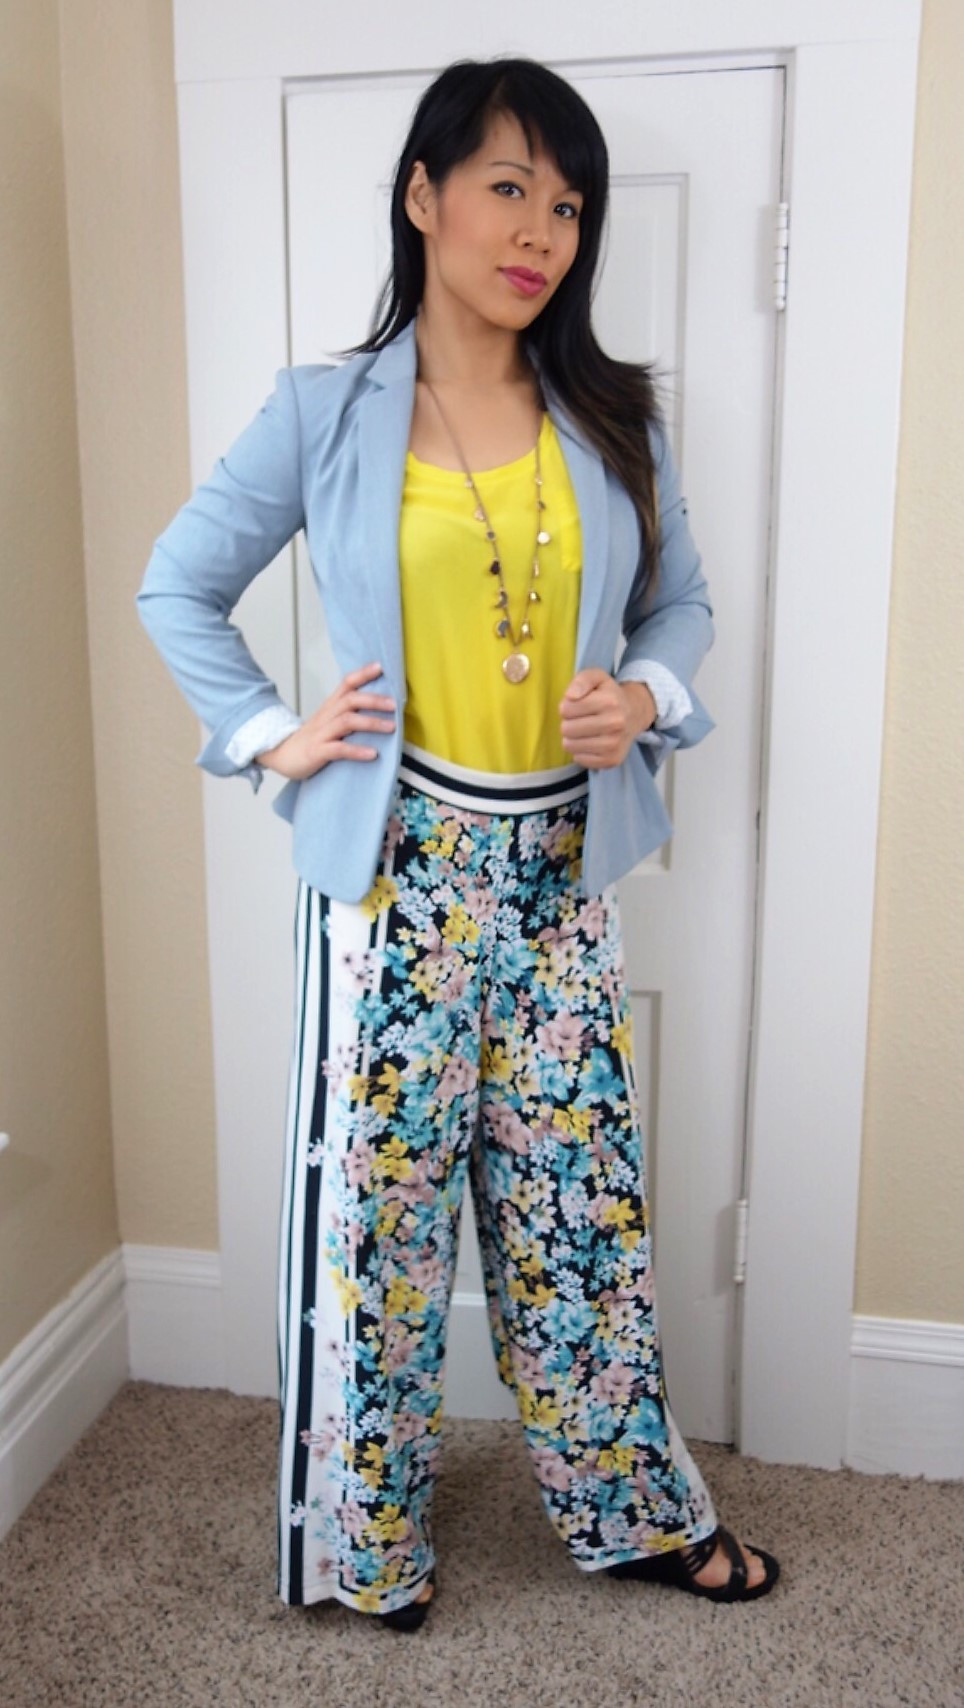 Kat wearing palazzo pants with power blazer